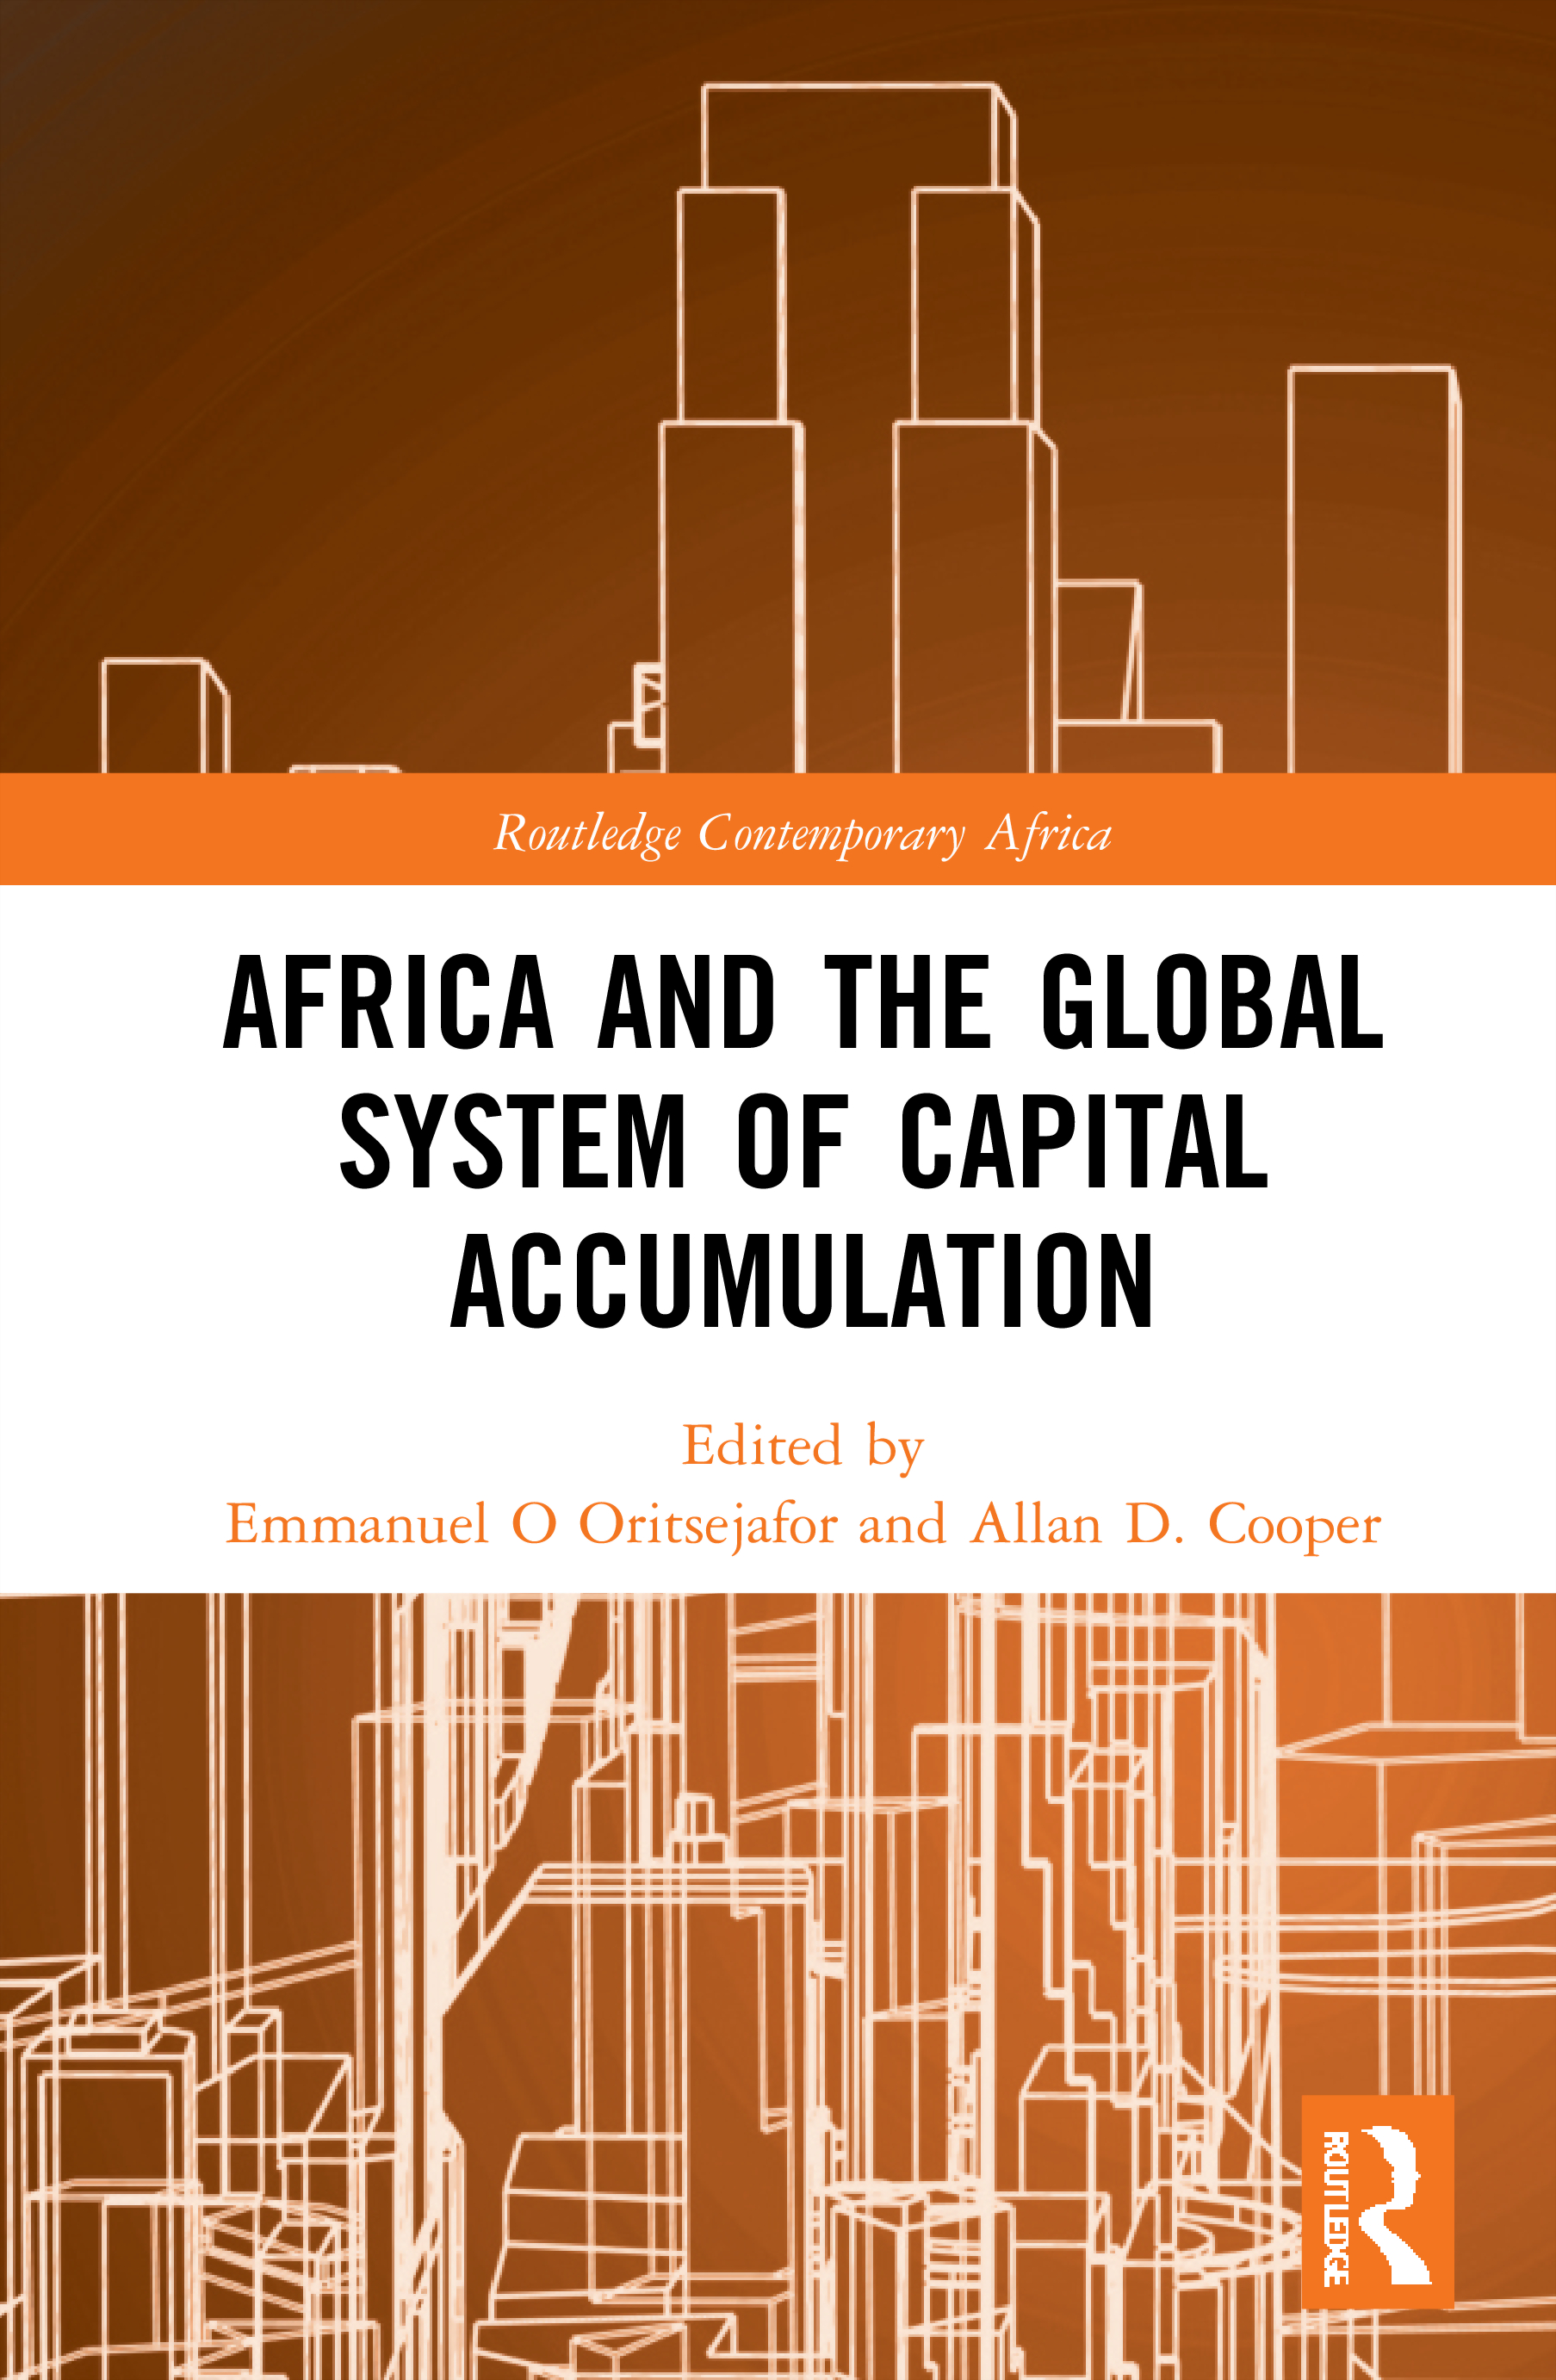 Capitalism and Africa's (infra)structural dependency